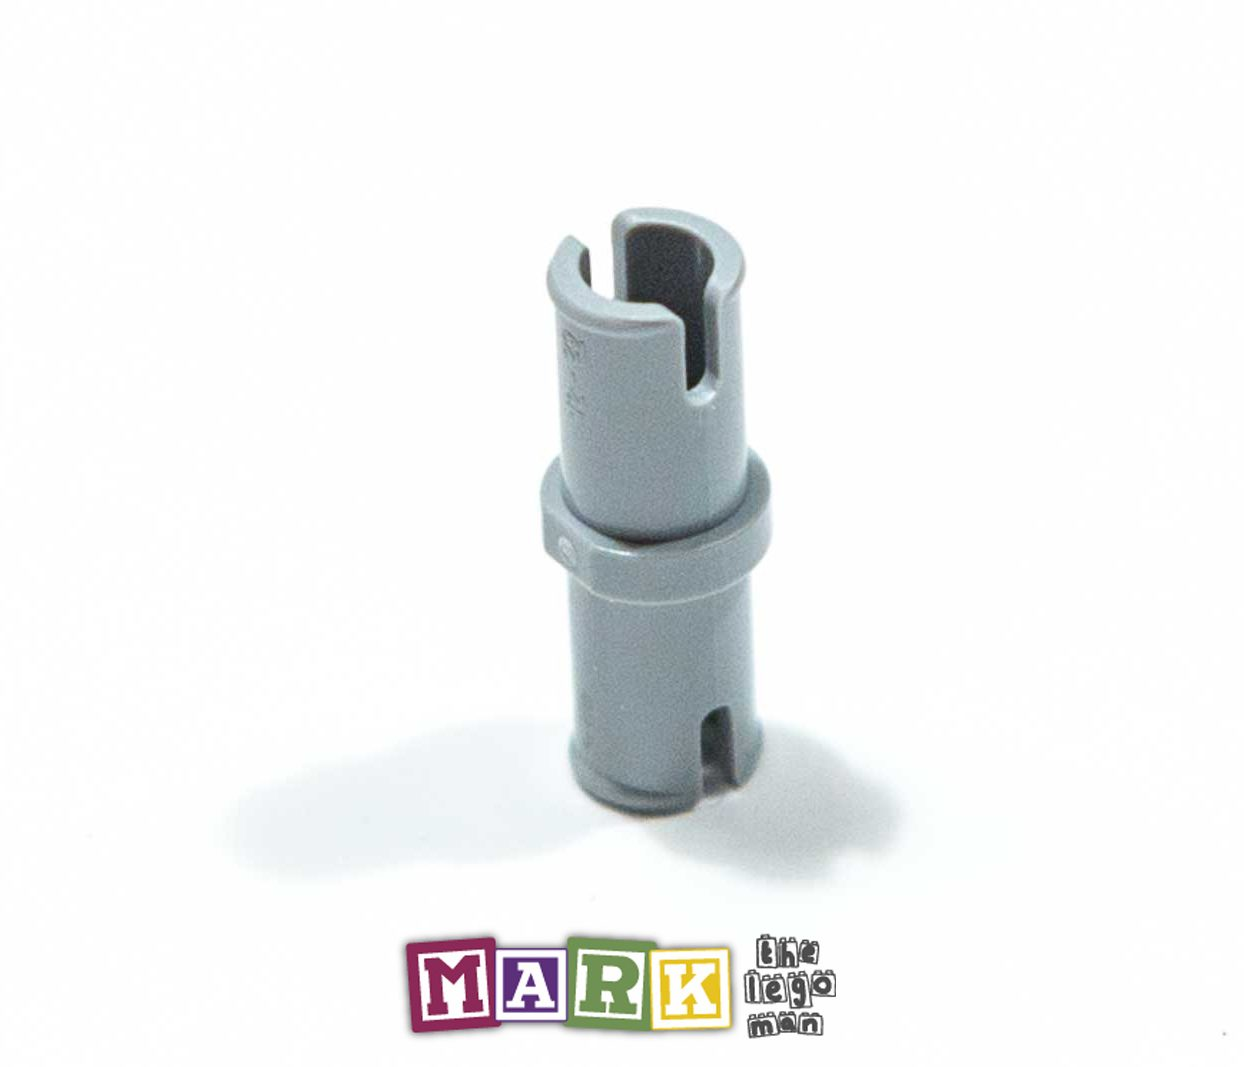 New Lego 3673 Connector Peg 4211807